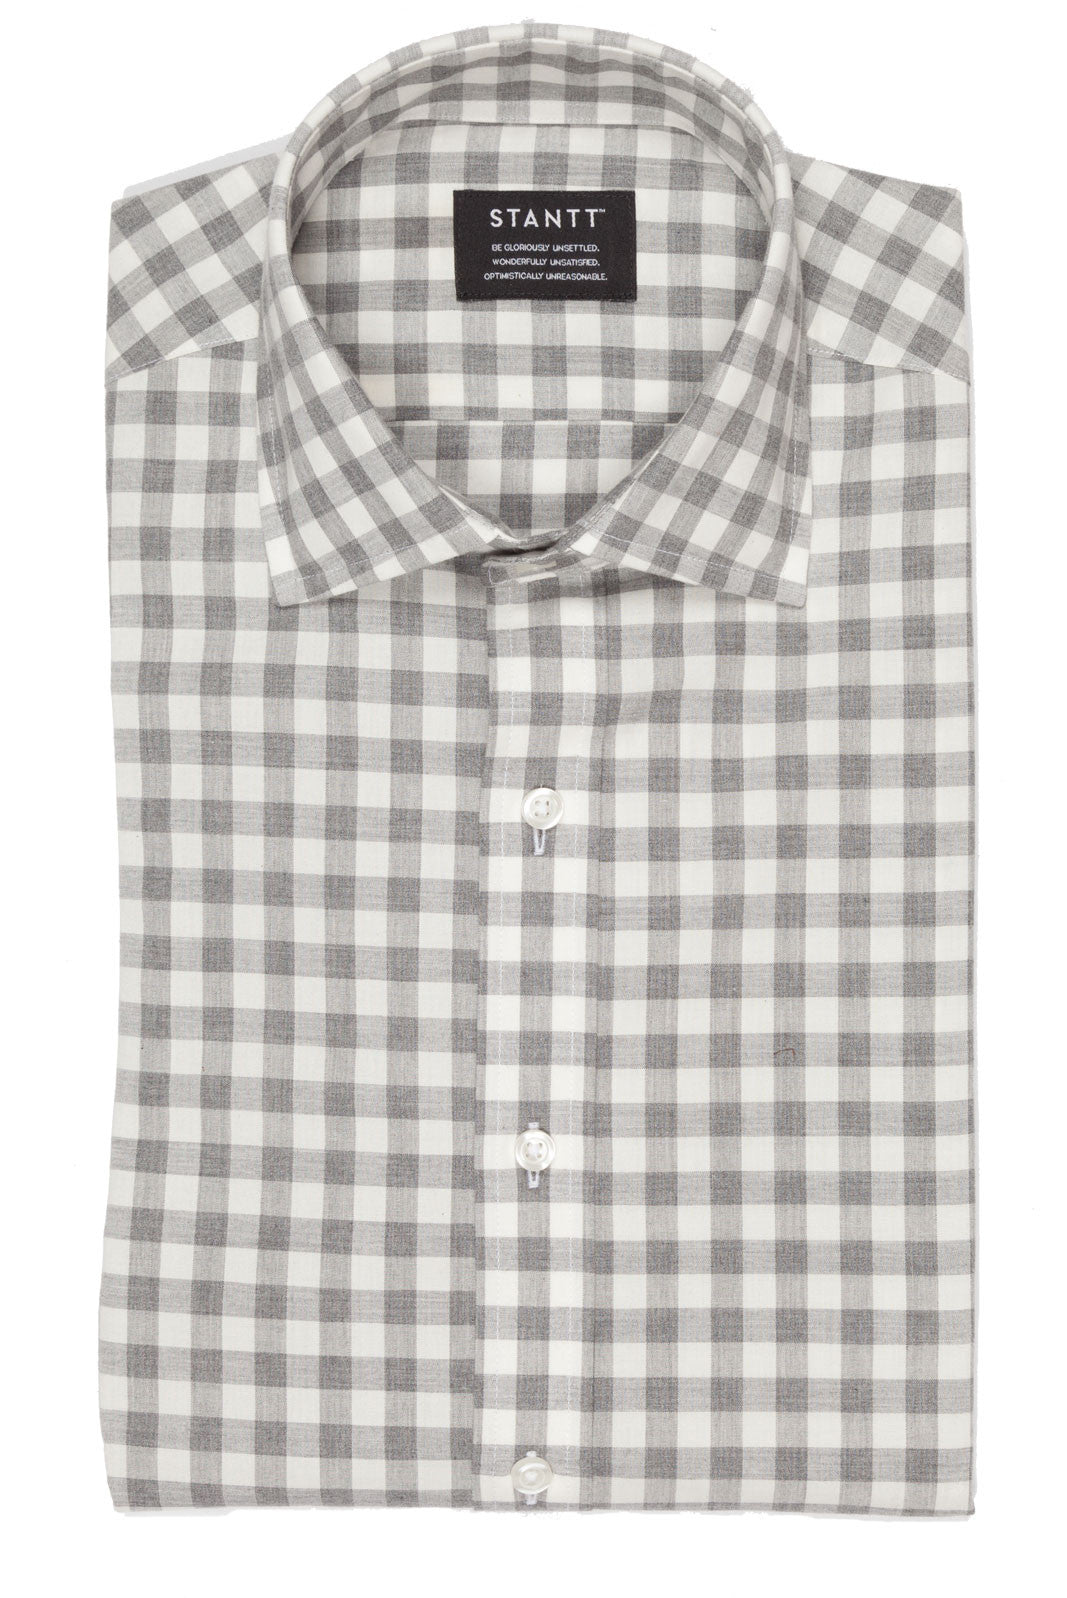 Grey Heather Gingham: Cutaway Collar, French Cuff